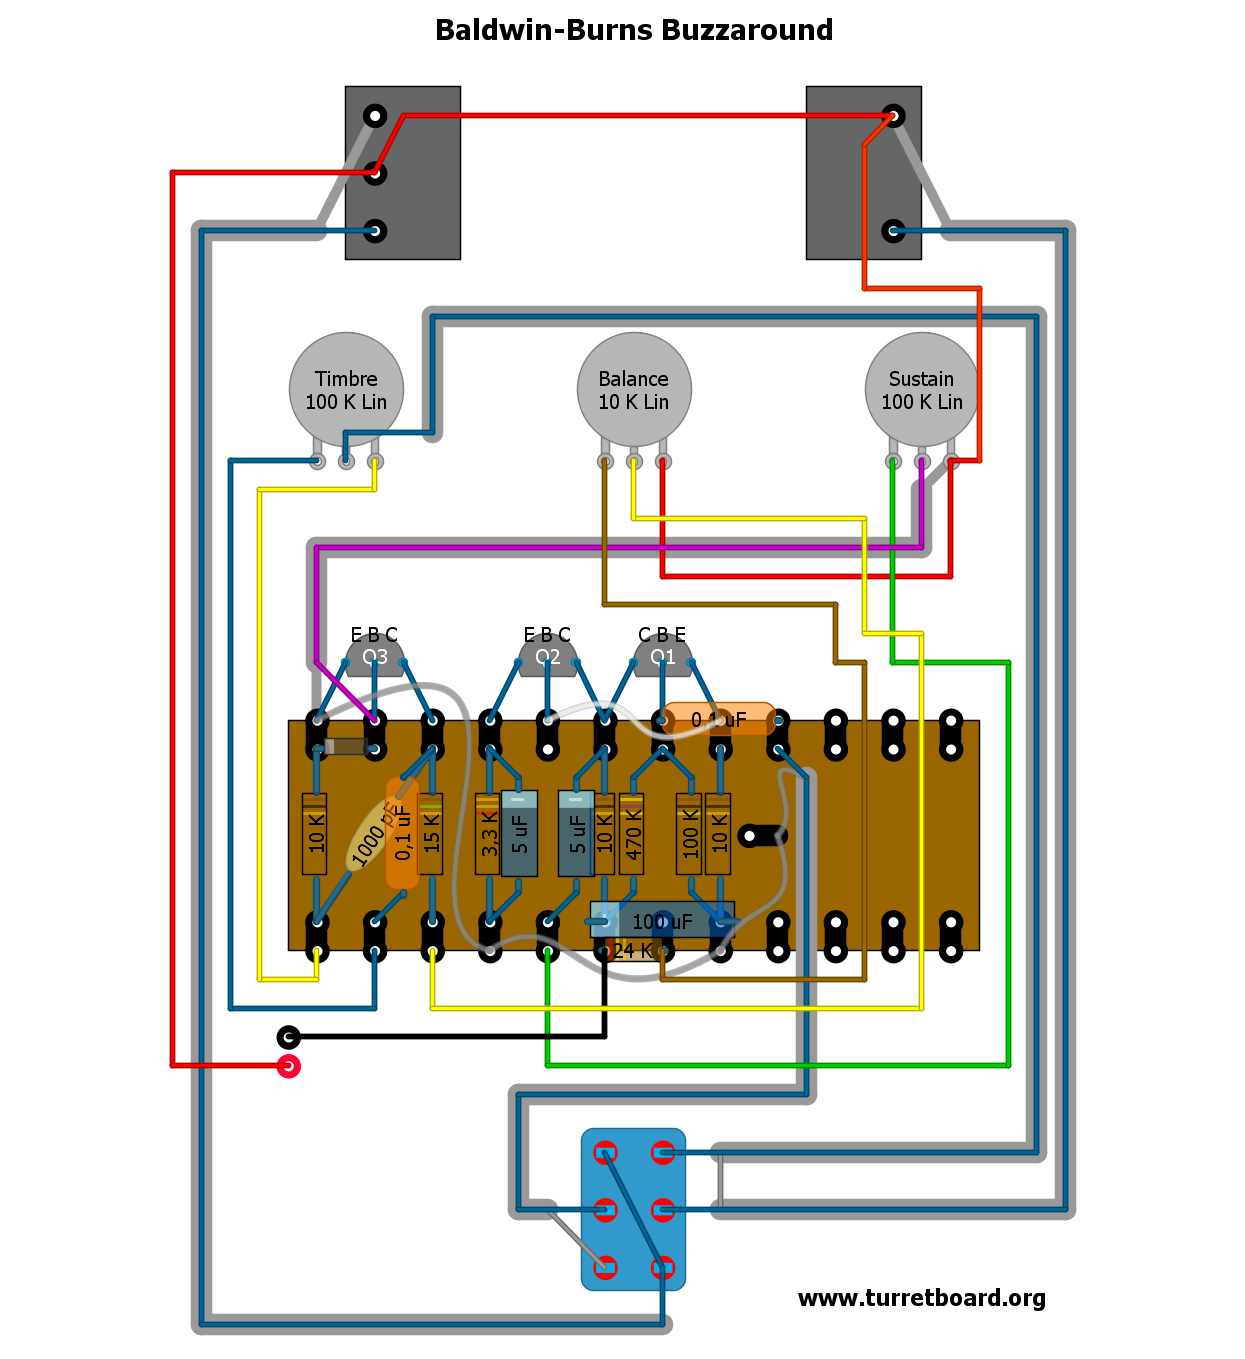 Fluorescent Light Ballast Wiring Diagram likewise Designing Hadoop For The Enterprise Data Center furthermore Watch furthermore 02 Durango Wiring Diagram furthermore Blank Basketball Coaches Court Diagram. on ge wiring diagram